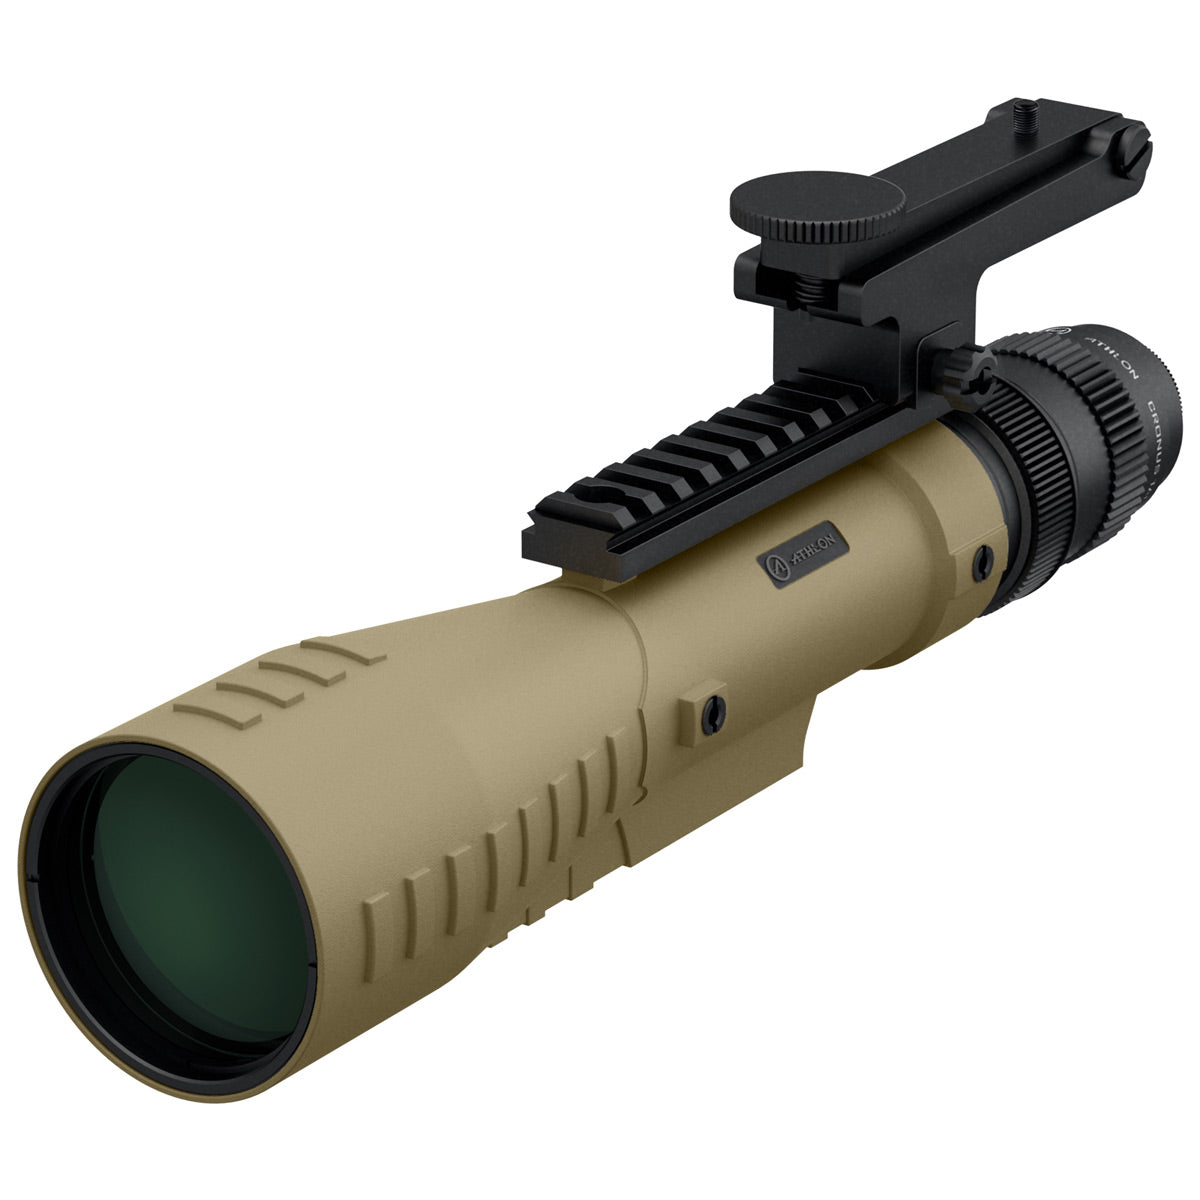 Athlon Optics Cronus Tactical 7-42x60mm UHD Spotting Scope - Tan